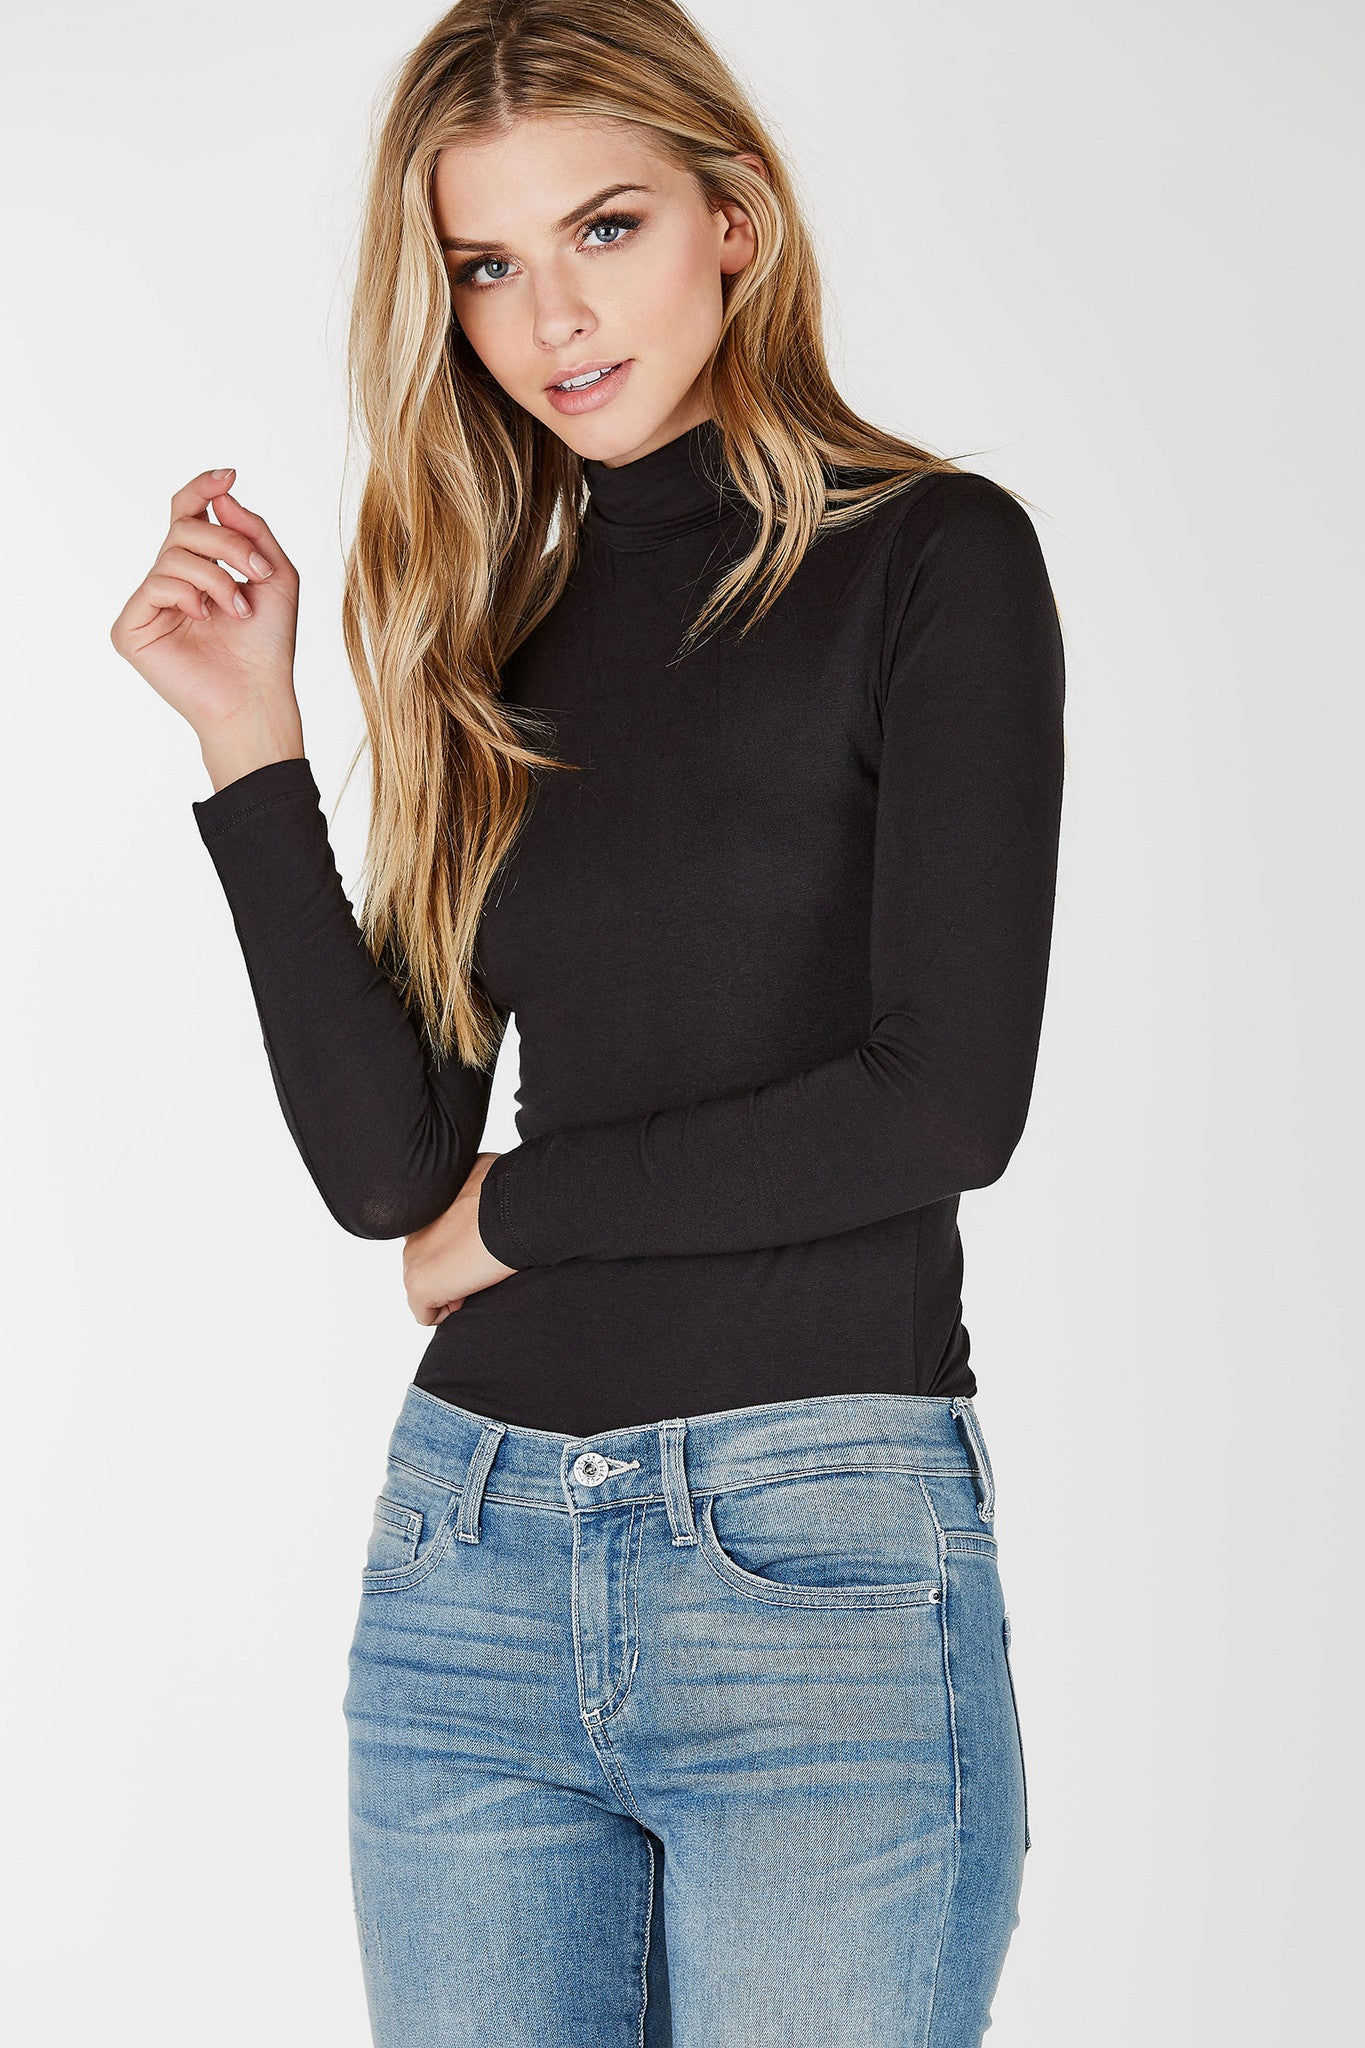 Lightweight, stretchy long sleeve top with slim body hugging fit. Long fitted sleeves with straight hem all around.